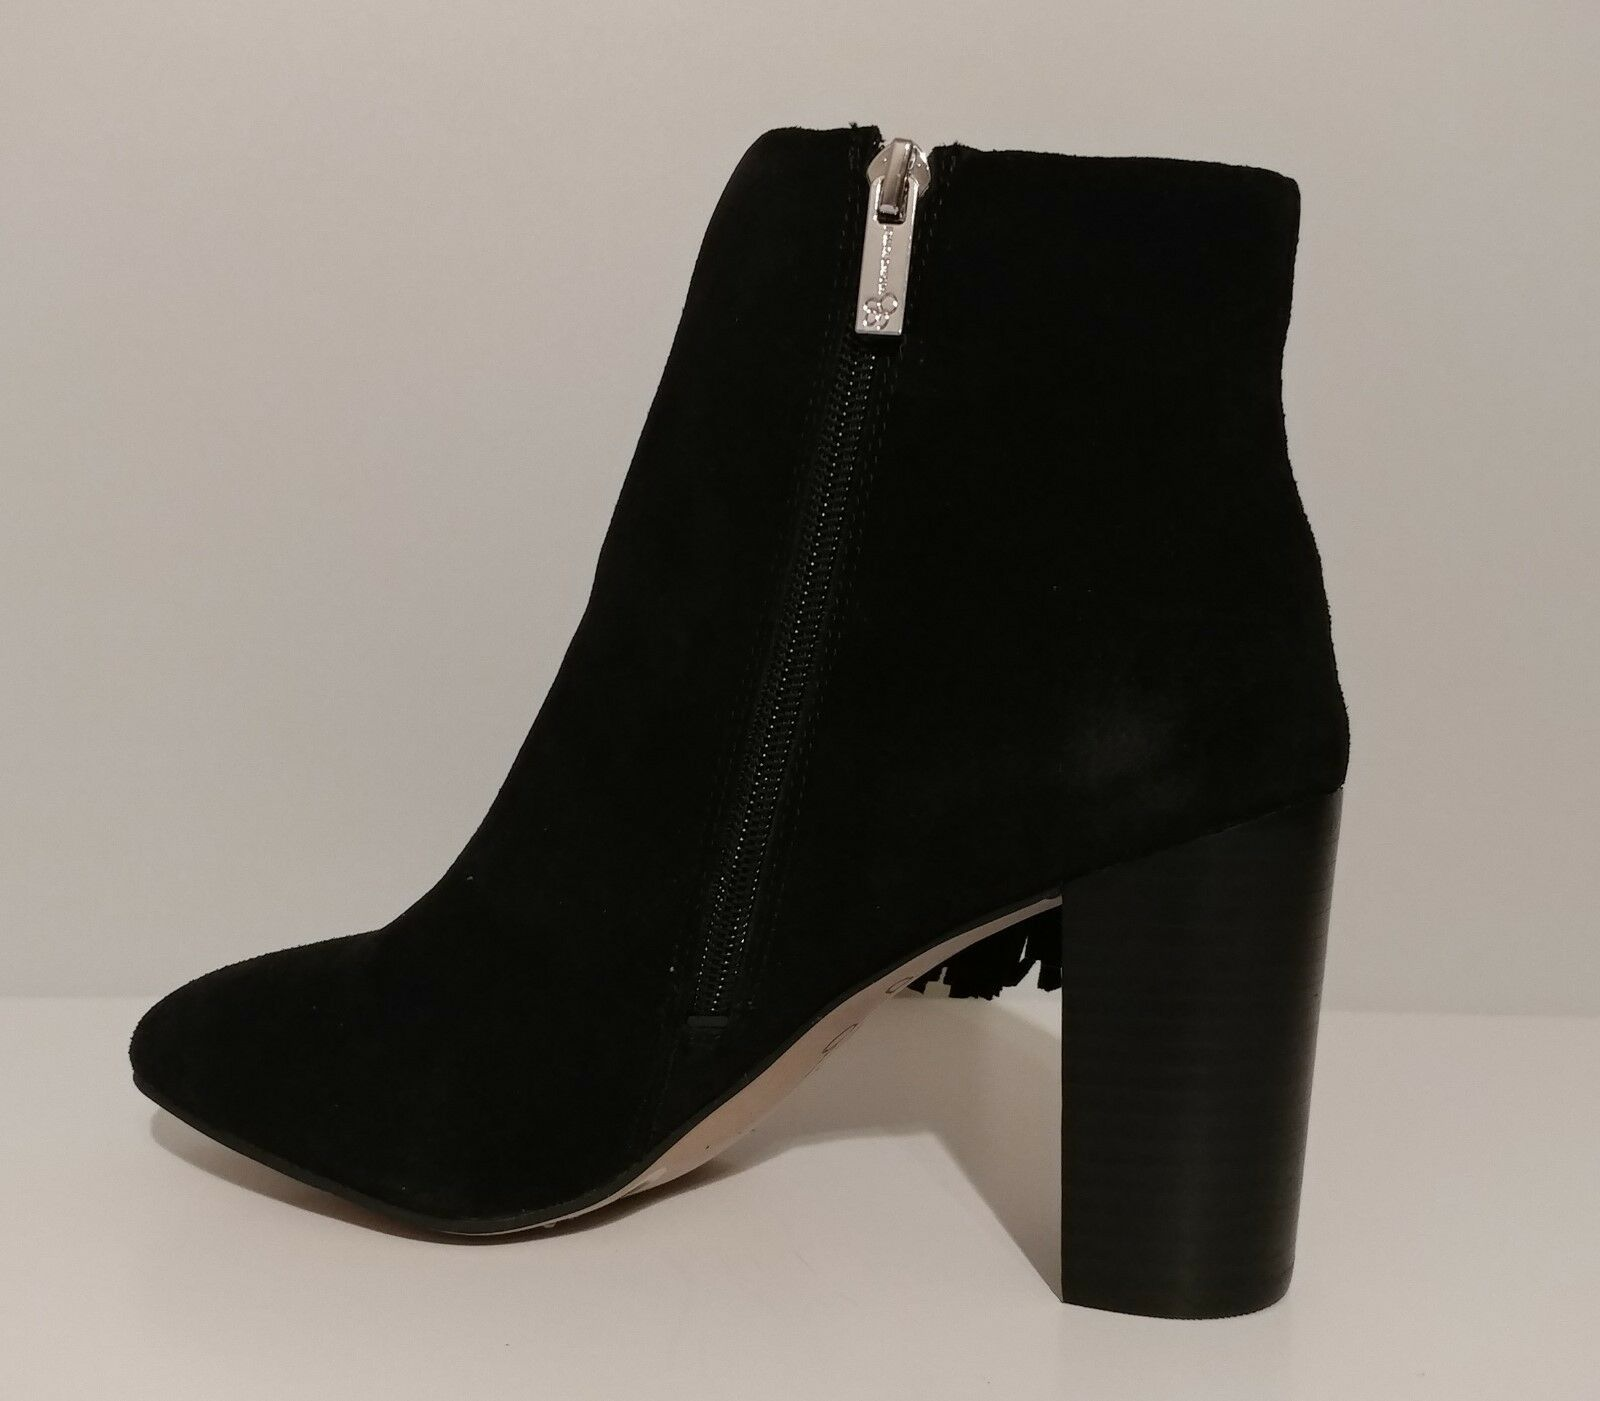 NEW NEW NEW   Jessica Simpson Black Suede Boots 3.5  Heel Size 9.5M US 39.5M EUR cfd6ff